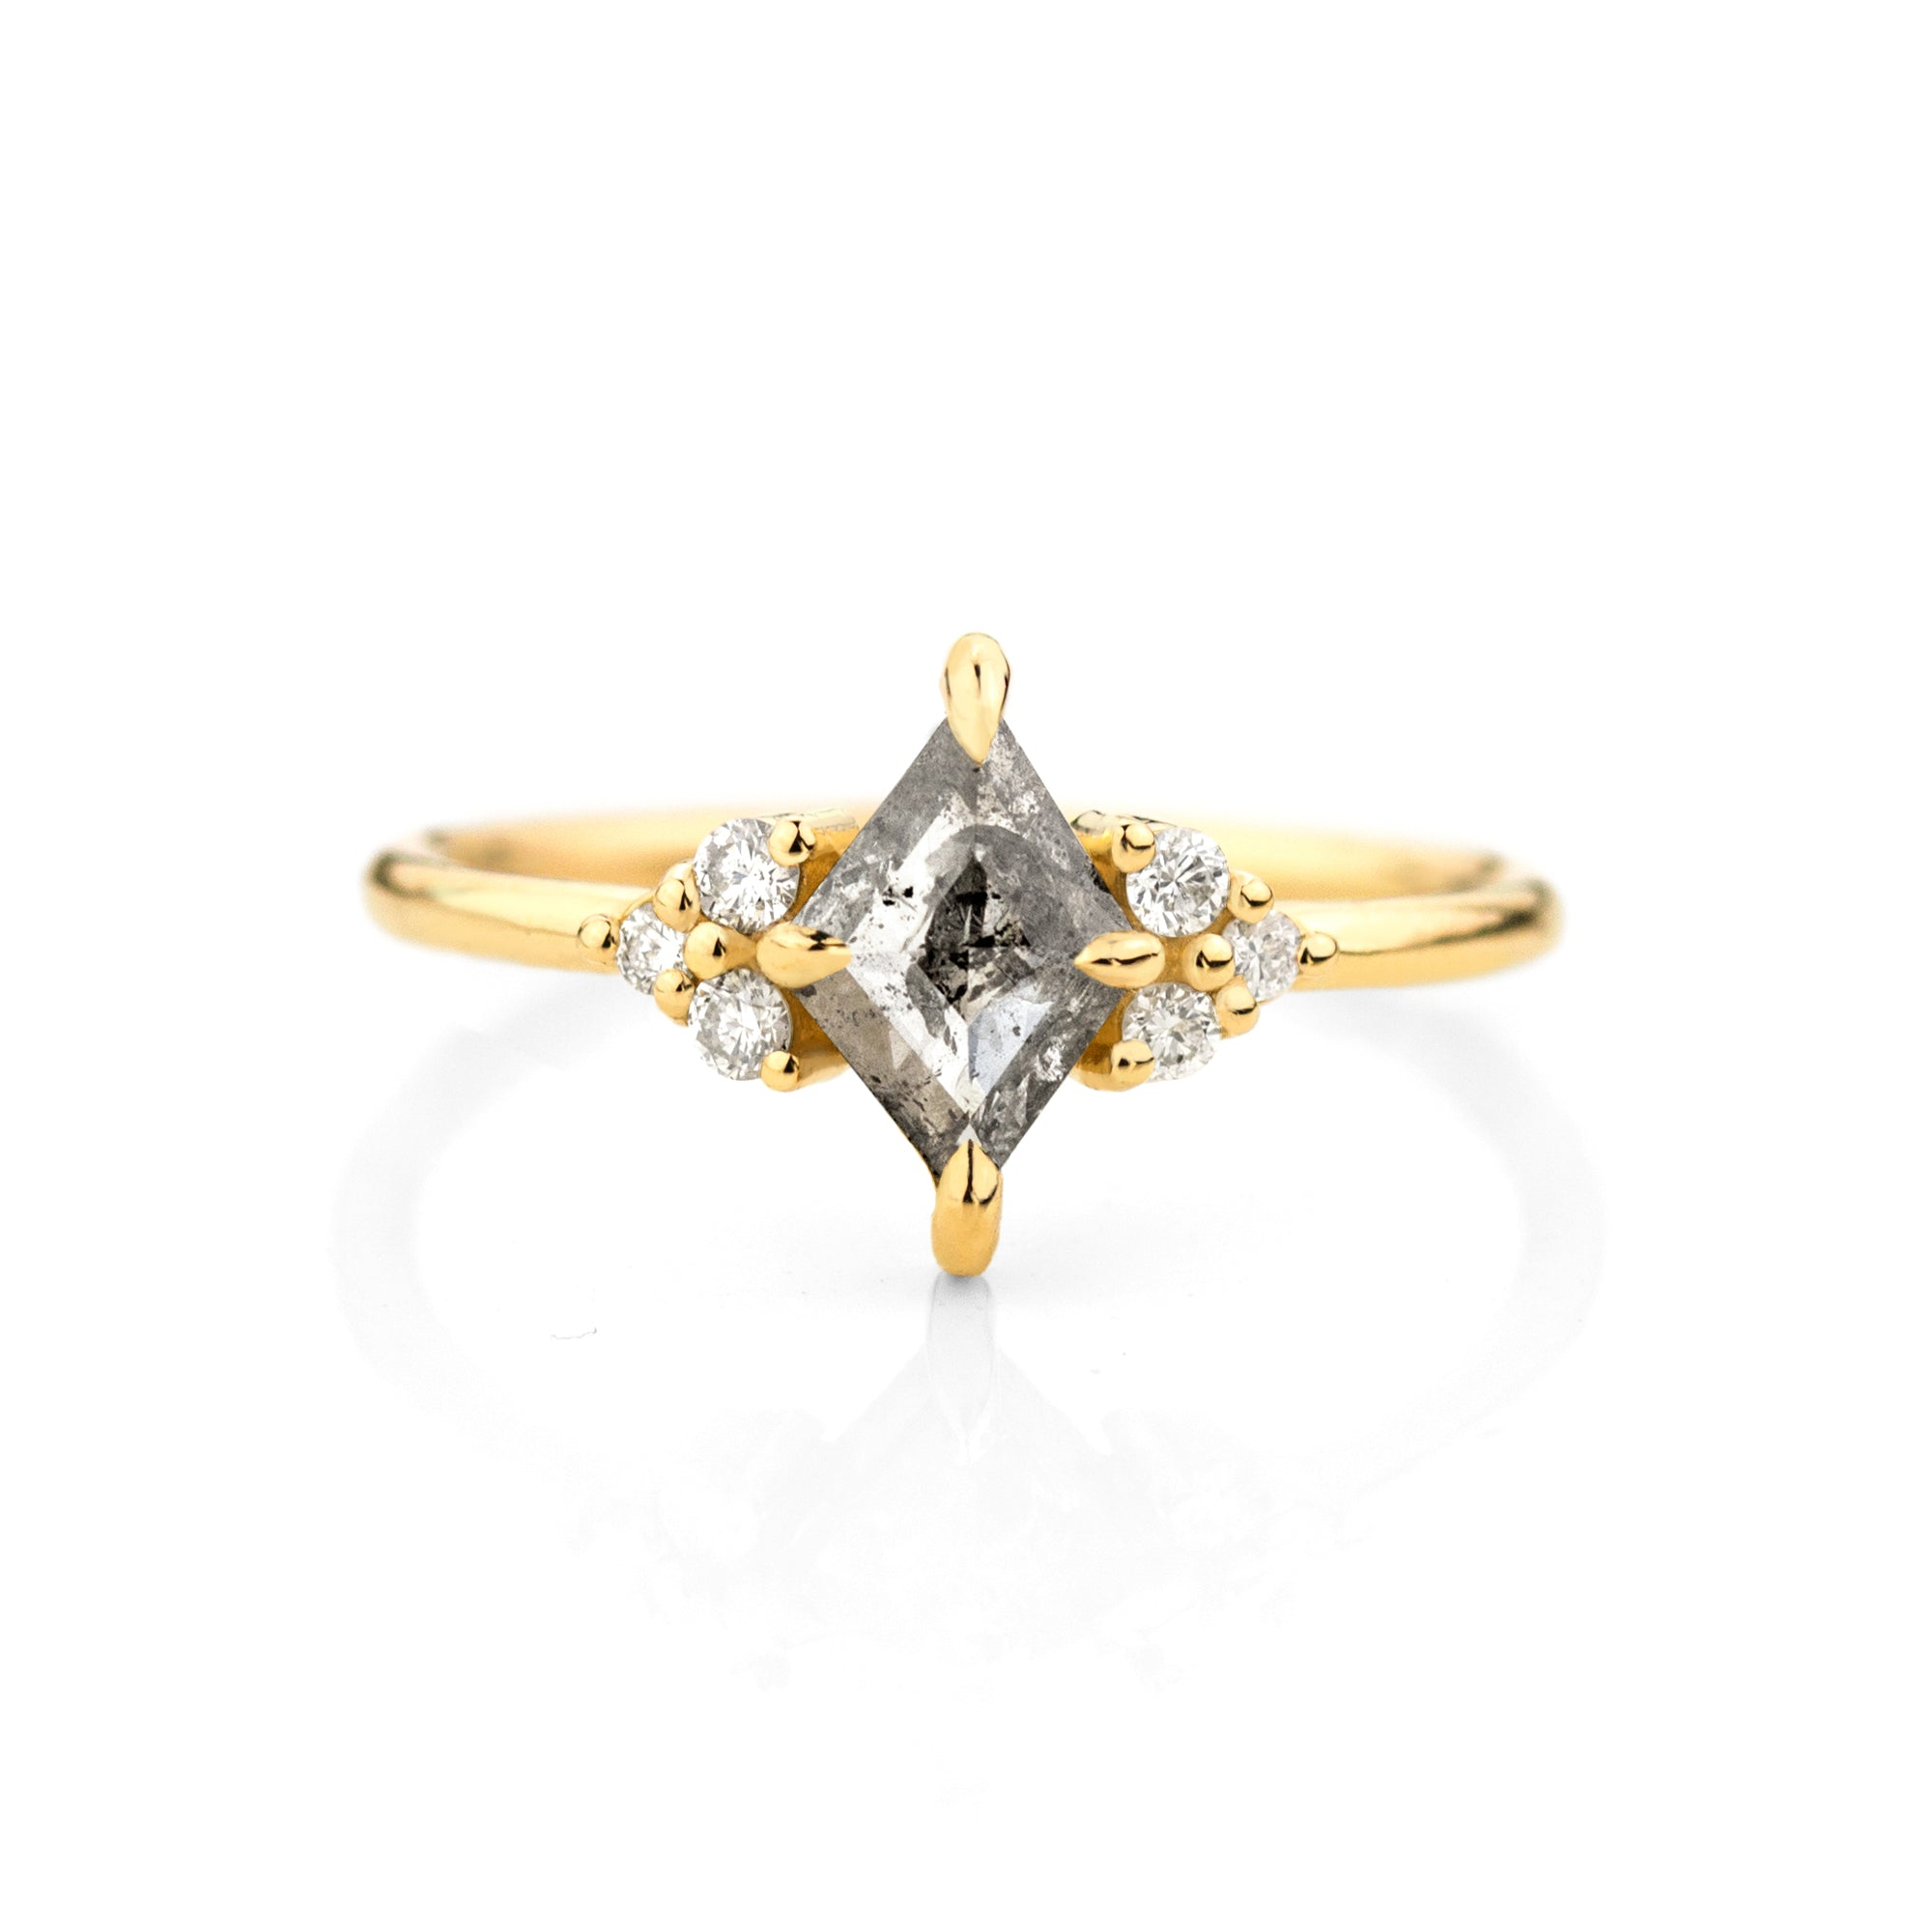 Sienna Kite Cut Diamond Ring